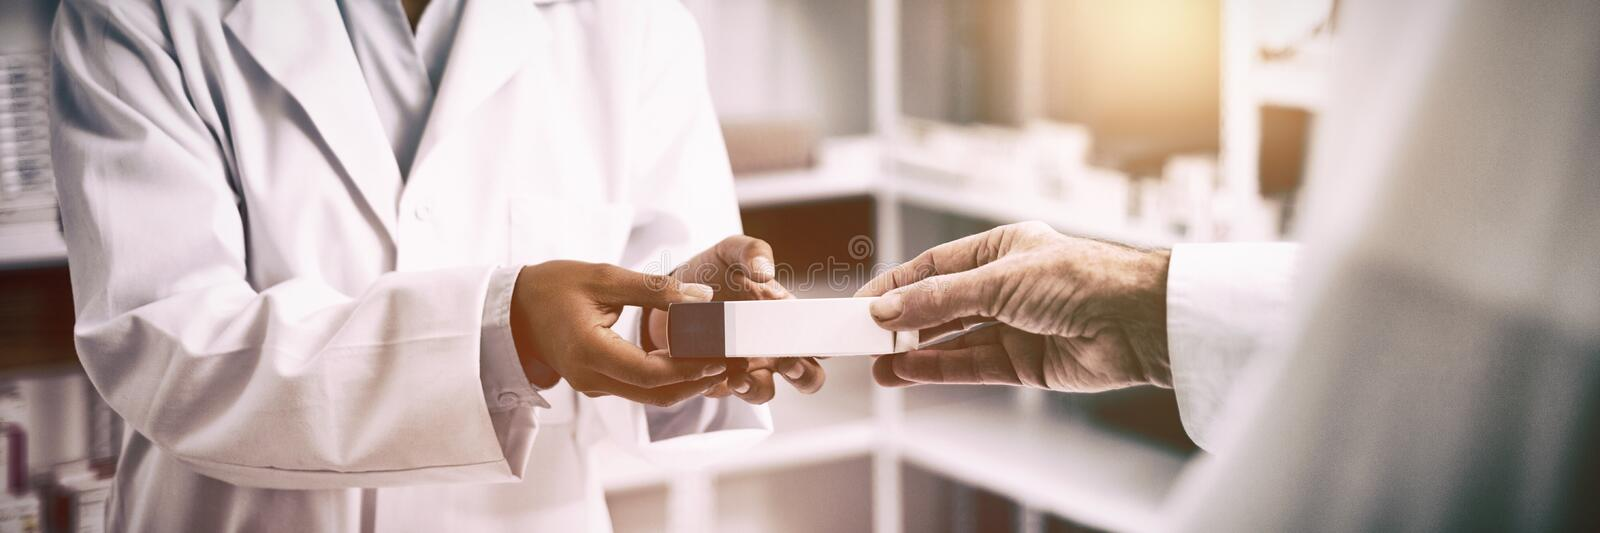 Cropped image of patient hand taking box from pharmacist stock photography